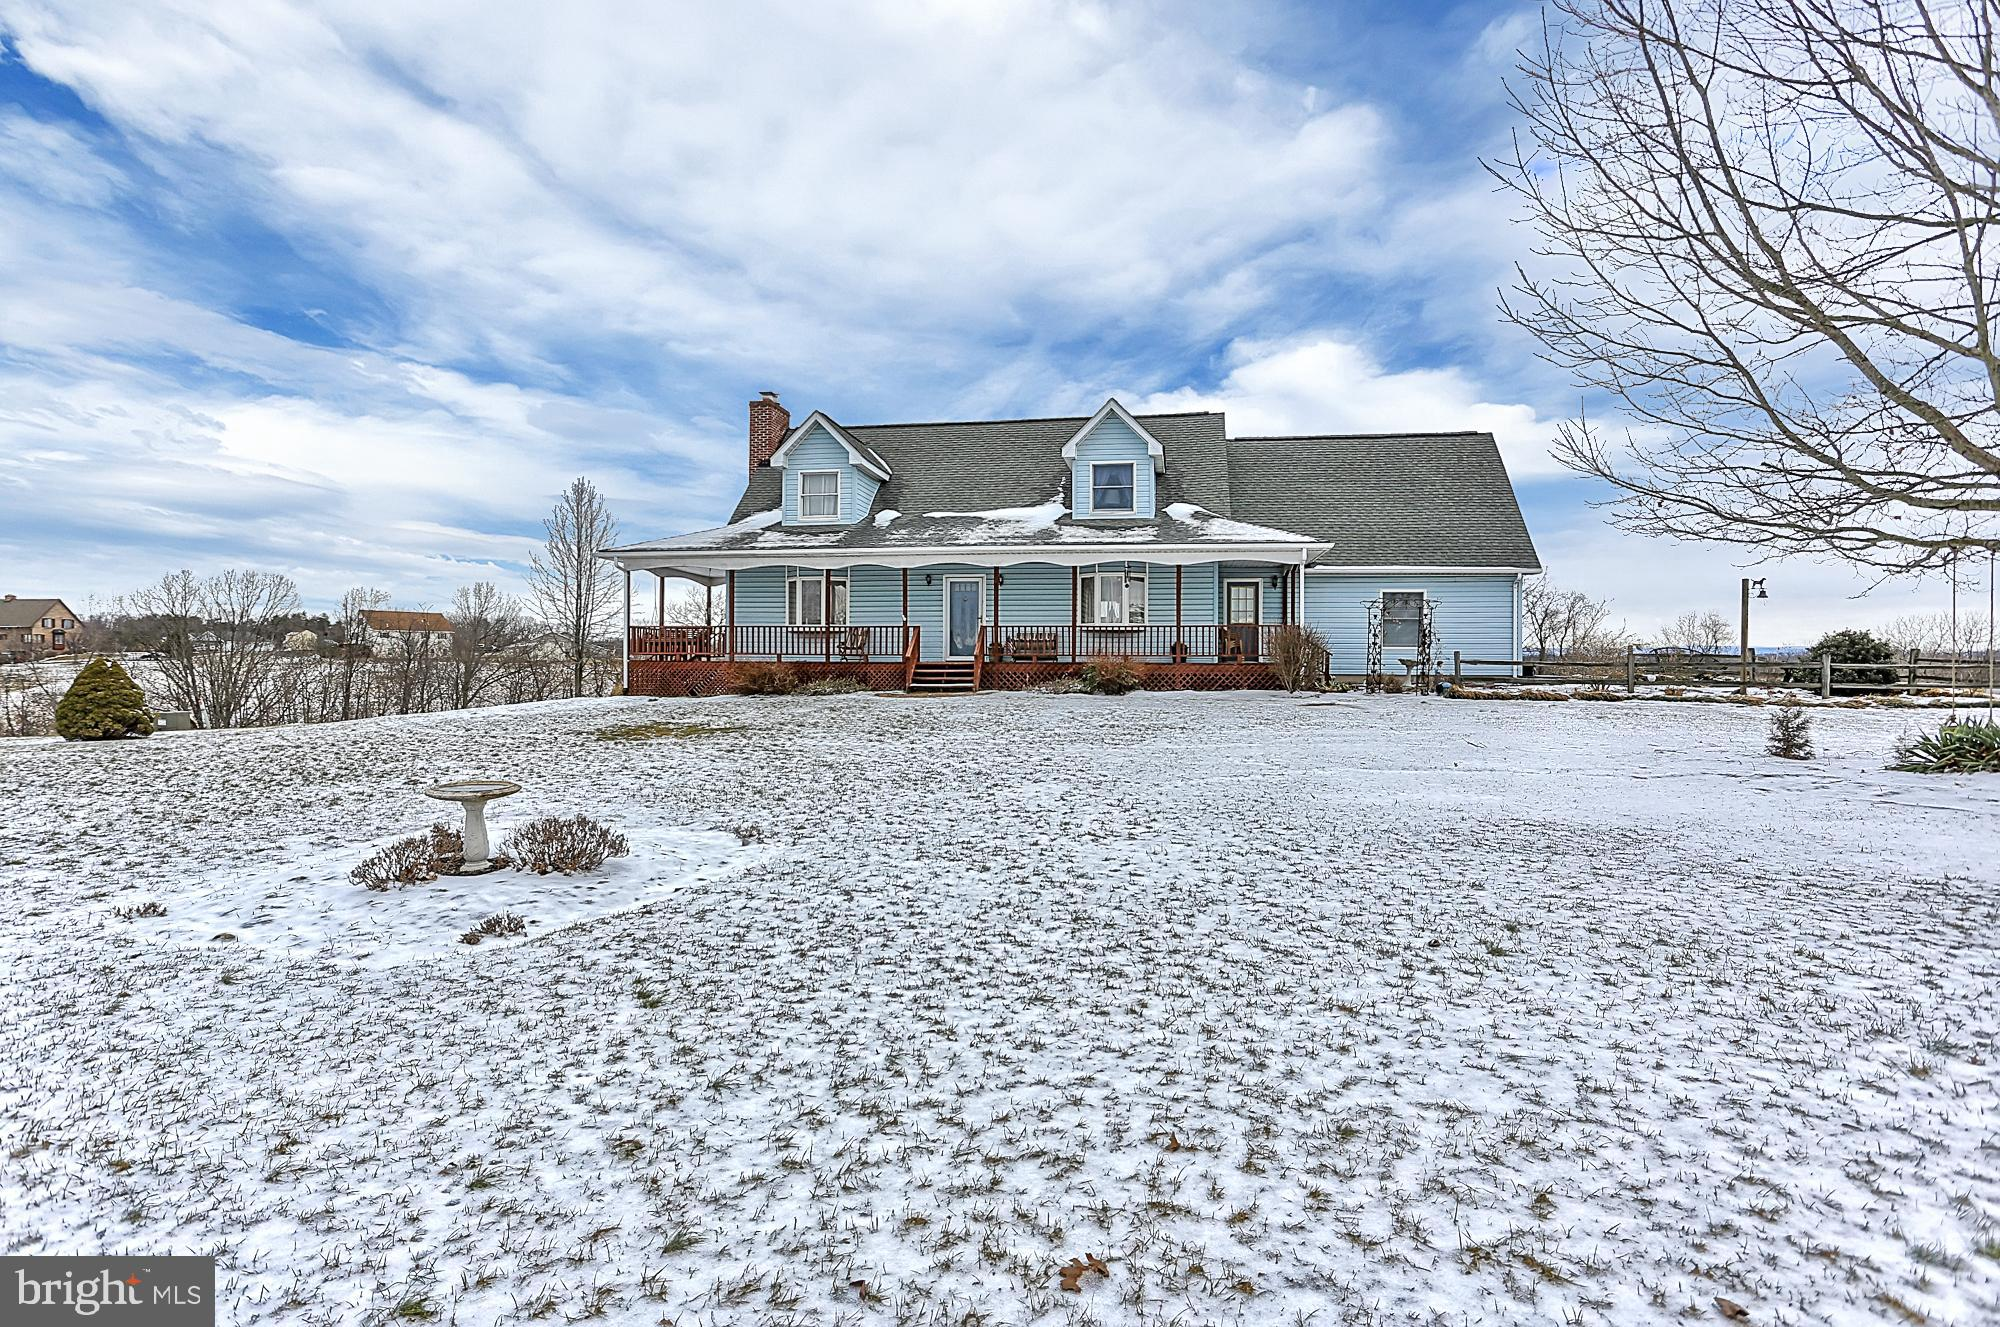 Room to spread out in this spacious Cape Cod on 2 acres with huge metal barn. Barn is 30x 56ft with